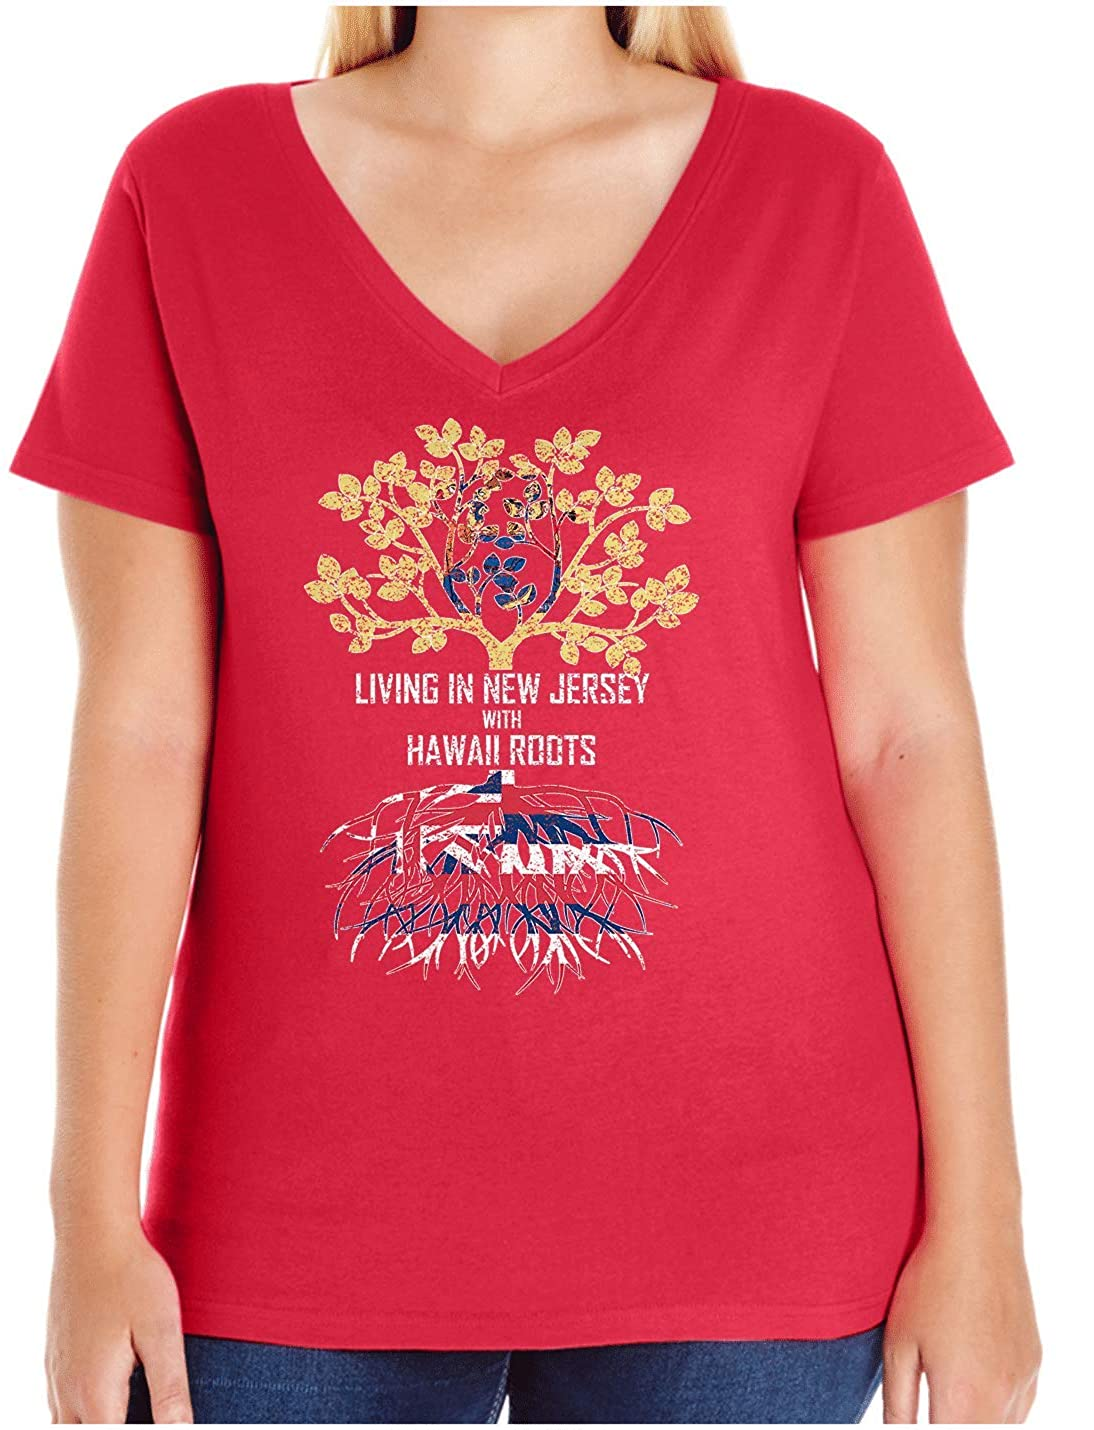 HARD EDGE DESIGN Women's Living in New Jersey with Hawaii Roots Plus Size V Neck T-Shirt, Size 3, Red